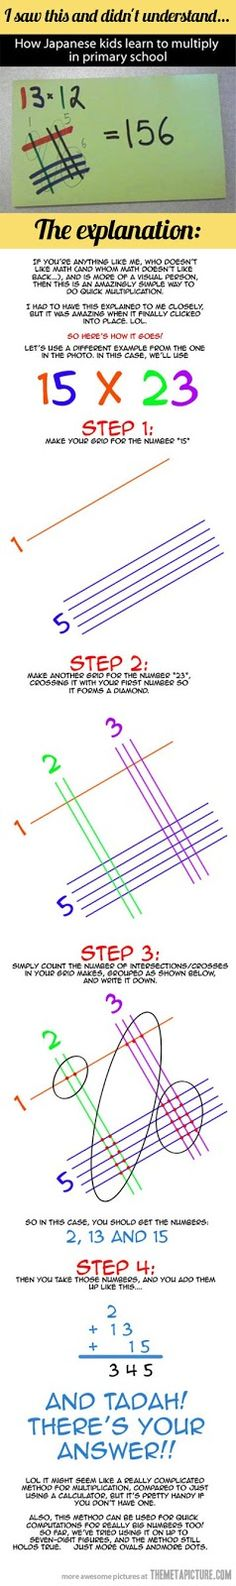 I think it may be just as or maybe easier than lattice method